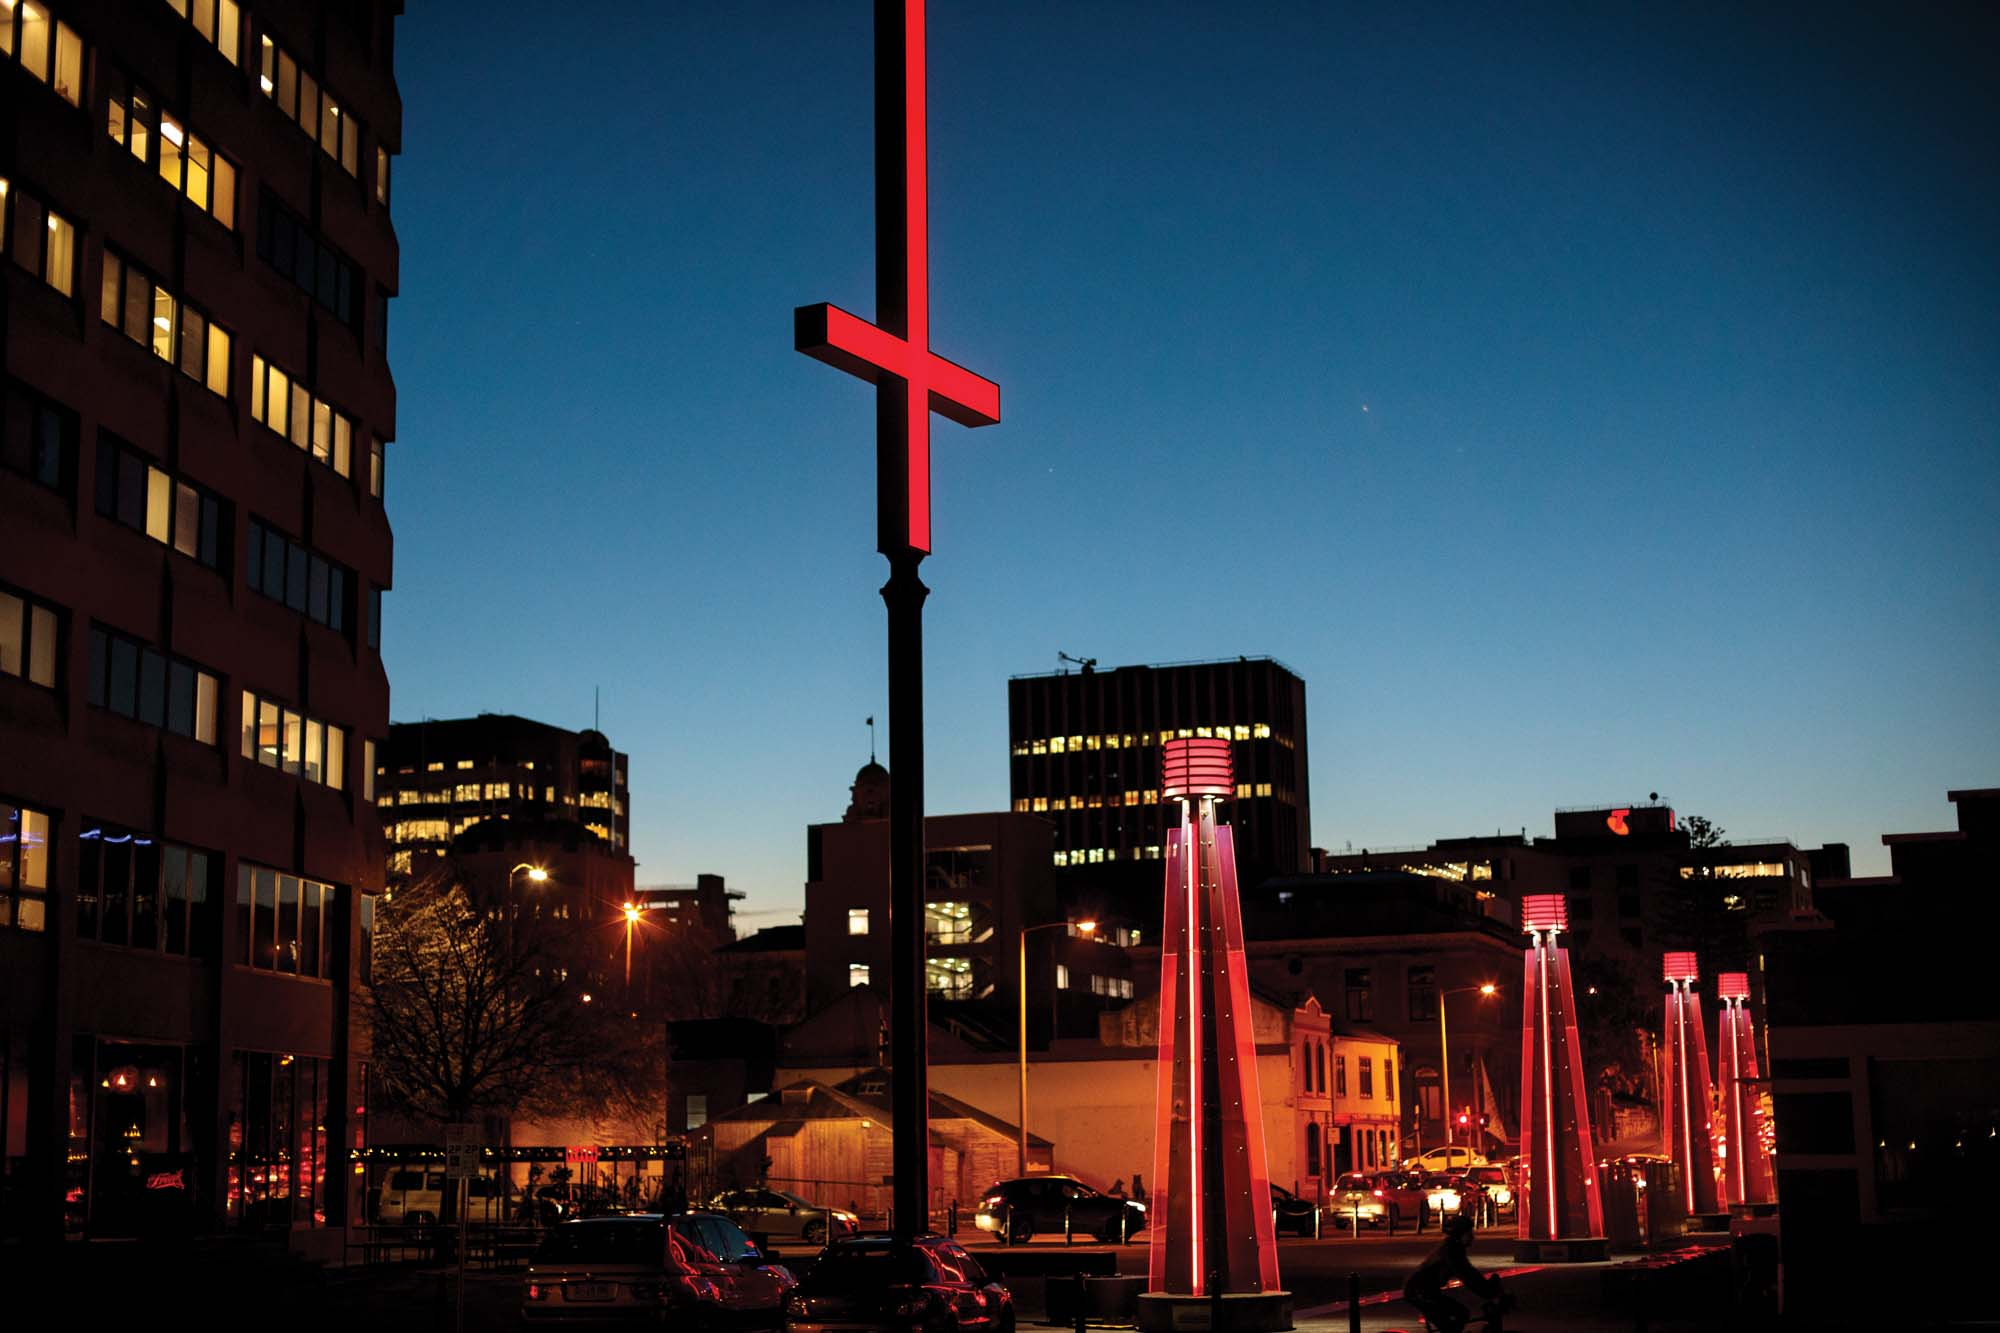 The entire city of Hobart comes alive with events and installations during Dark Mofo